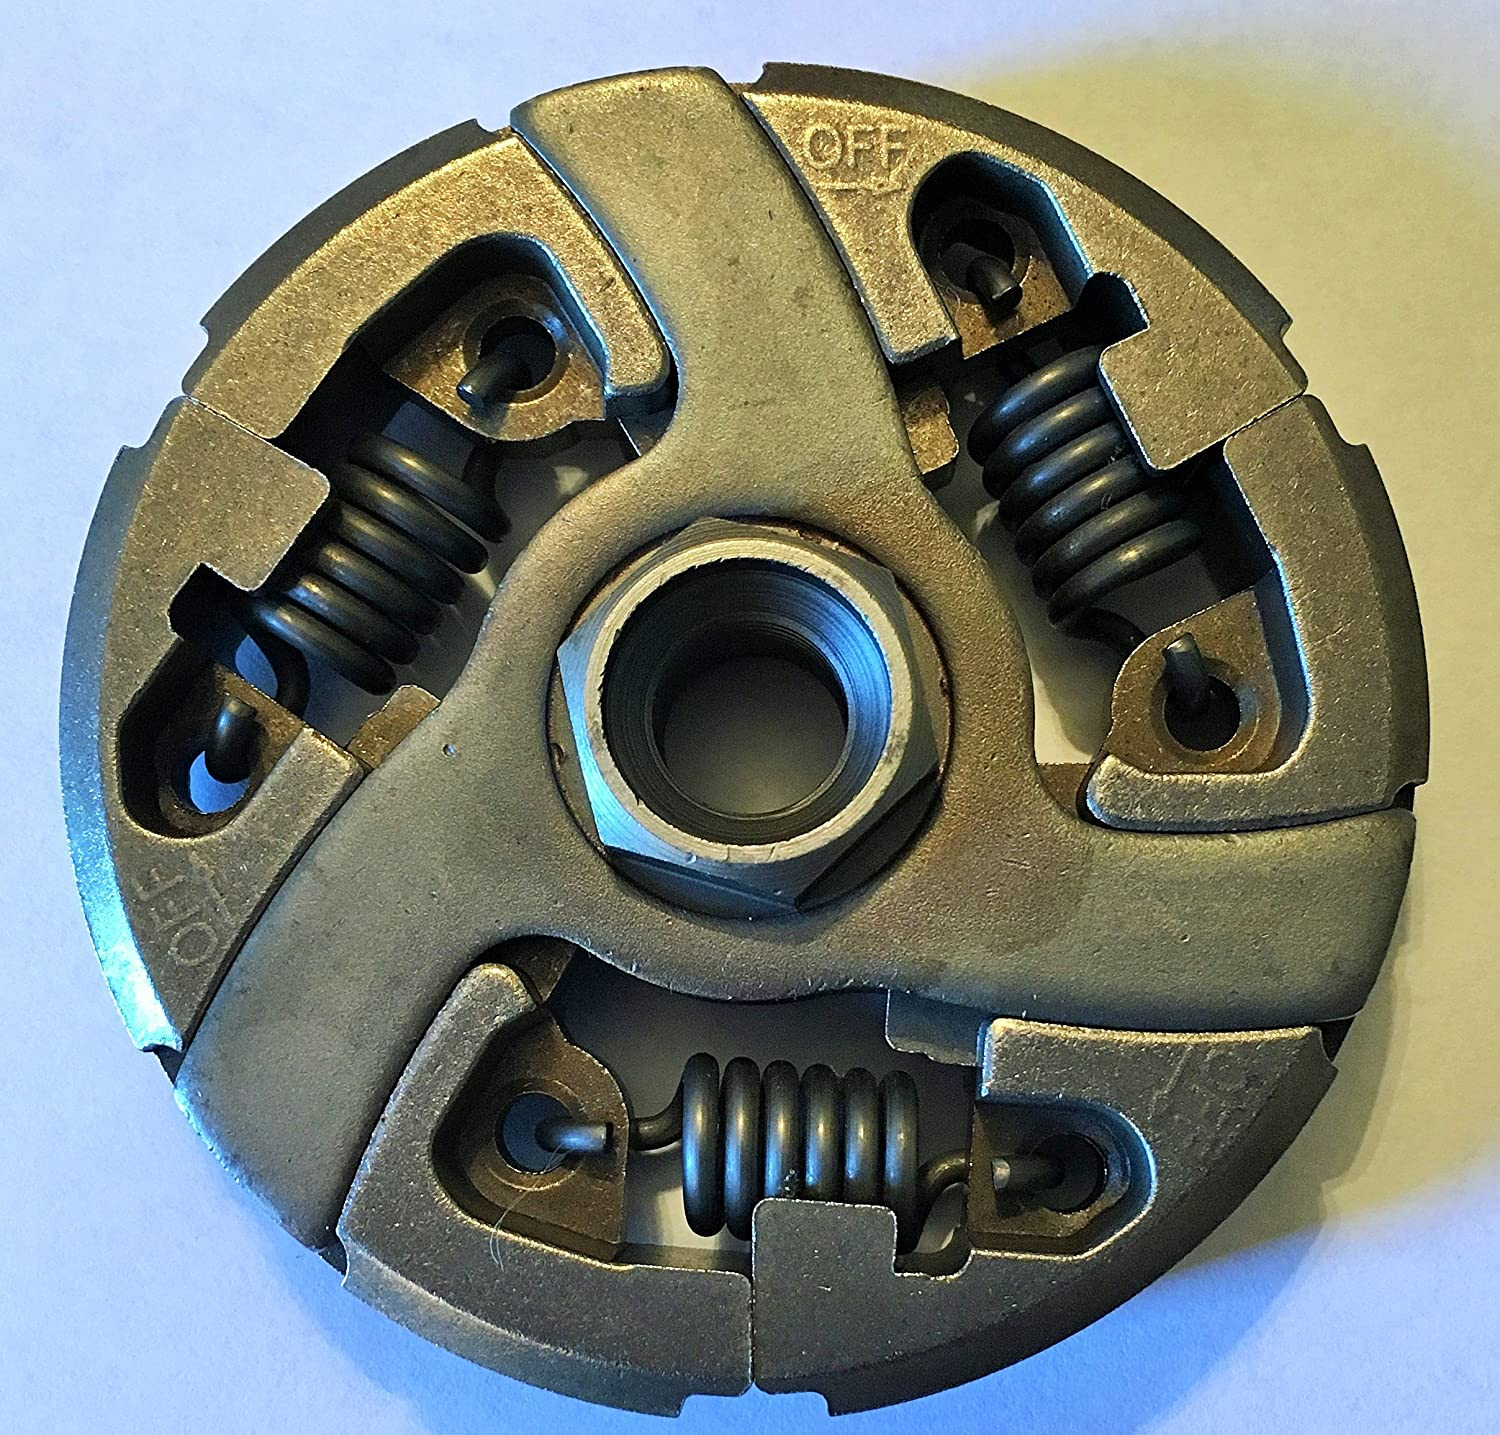 Replaces OEM 503701502 Clutch for Husqvarna 281 288 /& 395 Chainsaws